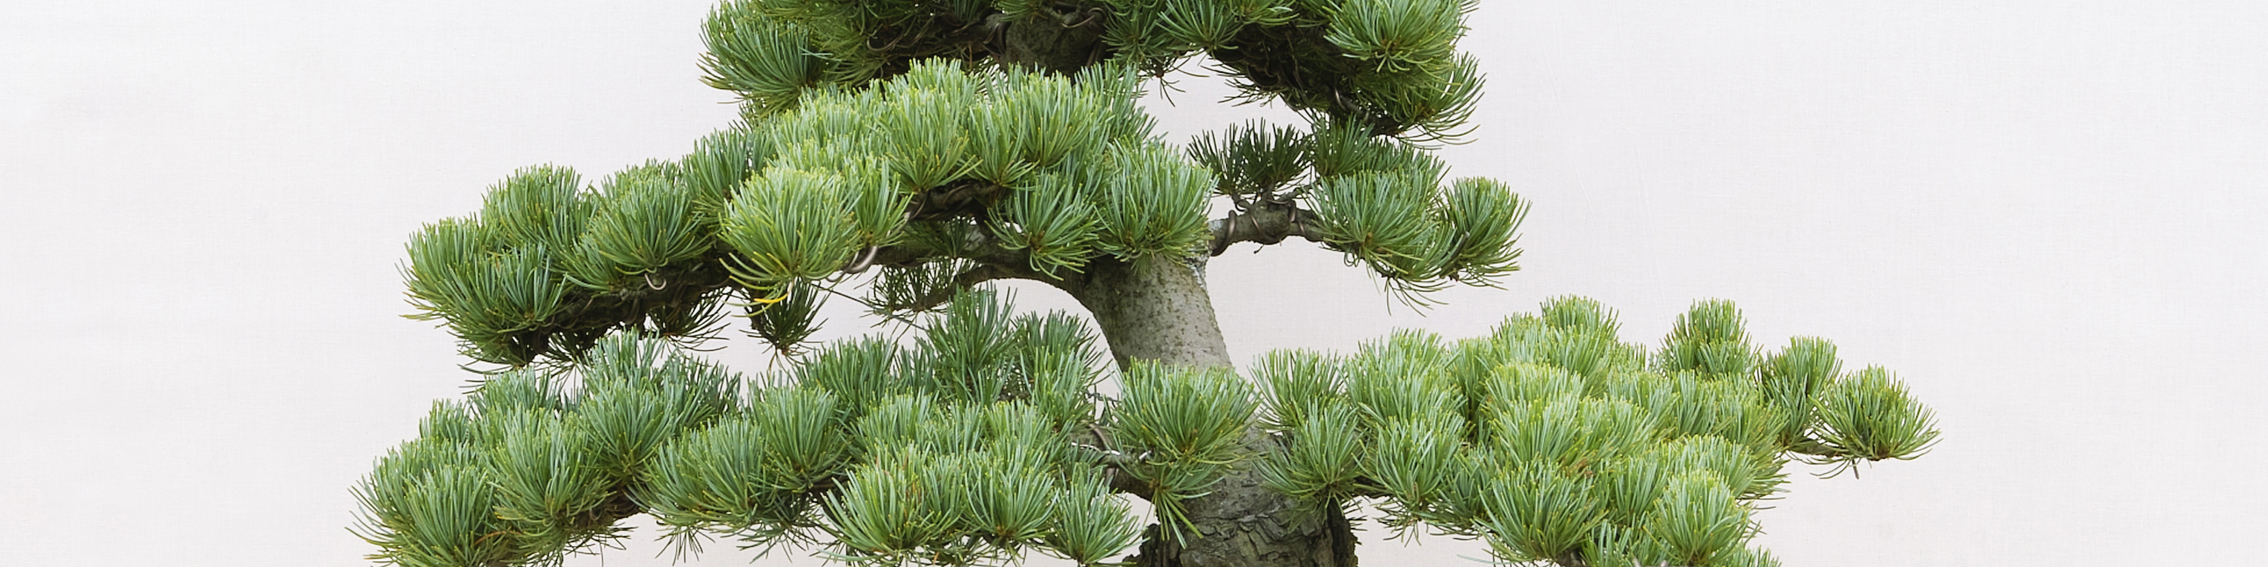 Bees Grow Your Own Pine Bonsai Tree Wiring Tips